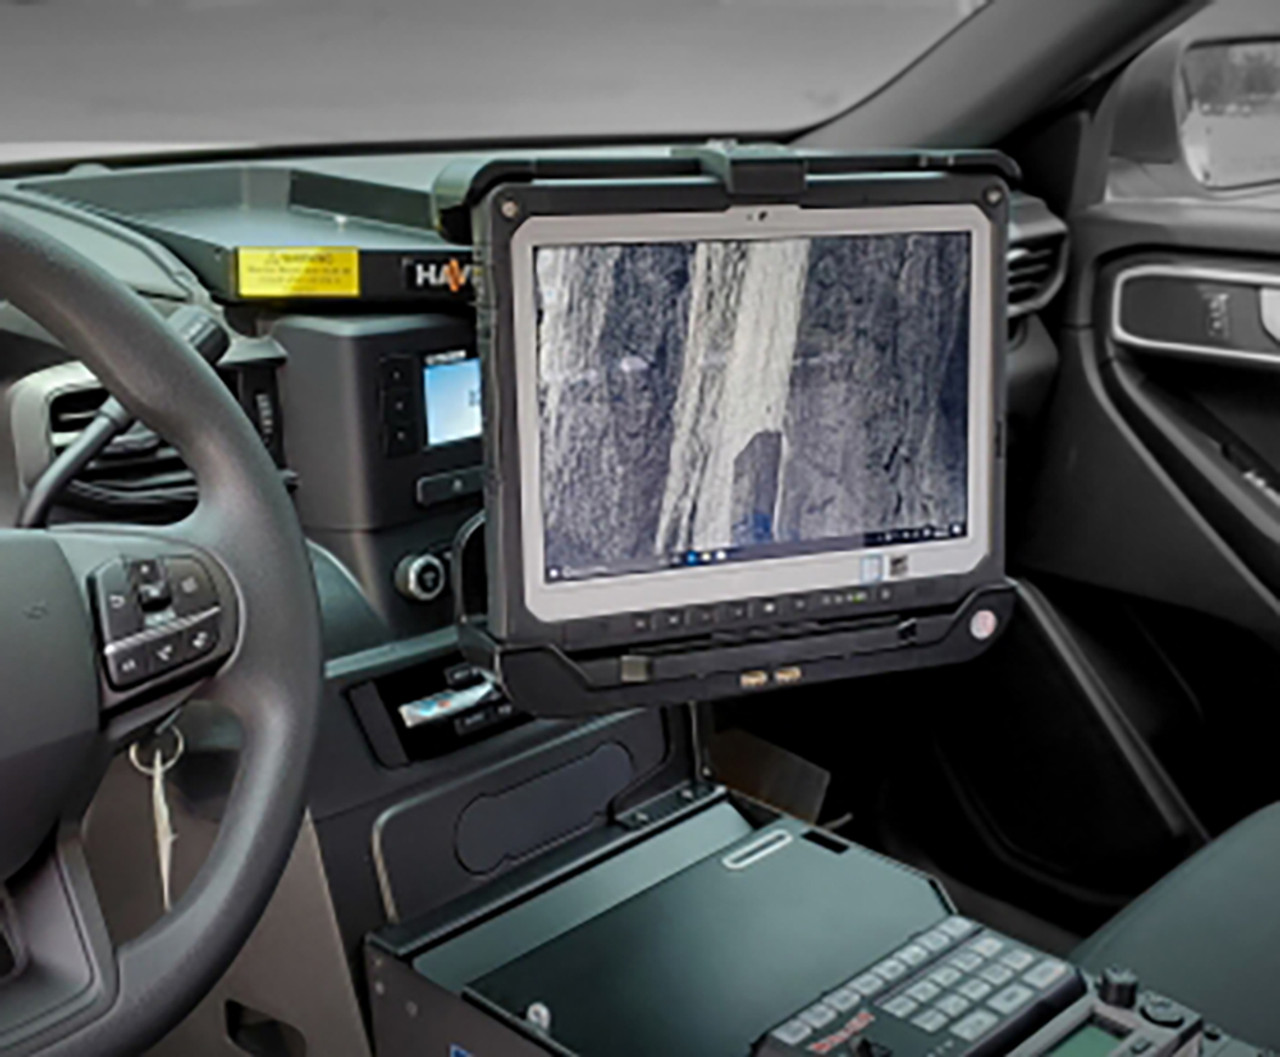 Havis C Dmm 3015 Ford Police Interceptor Pi Utility 2020 Dash Mount For Monitors Or Tablets Swing Out Or Flip Up 12 Lb Weight Capacity